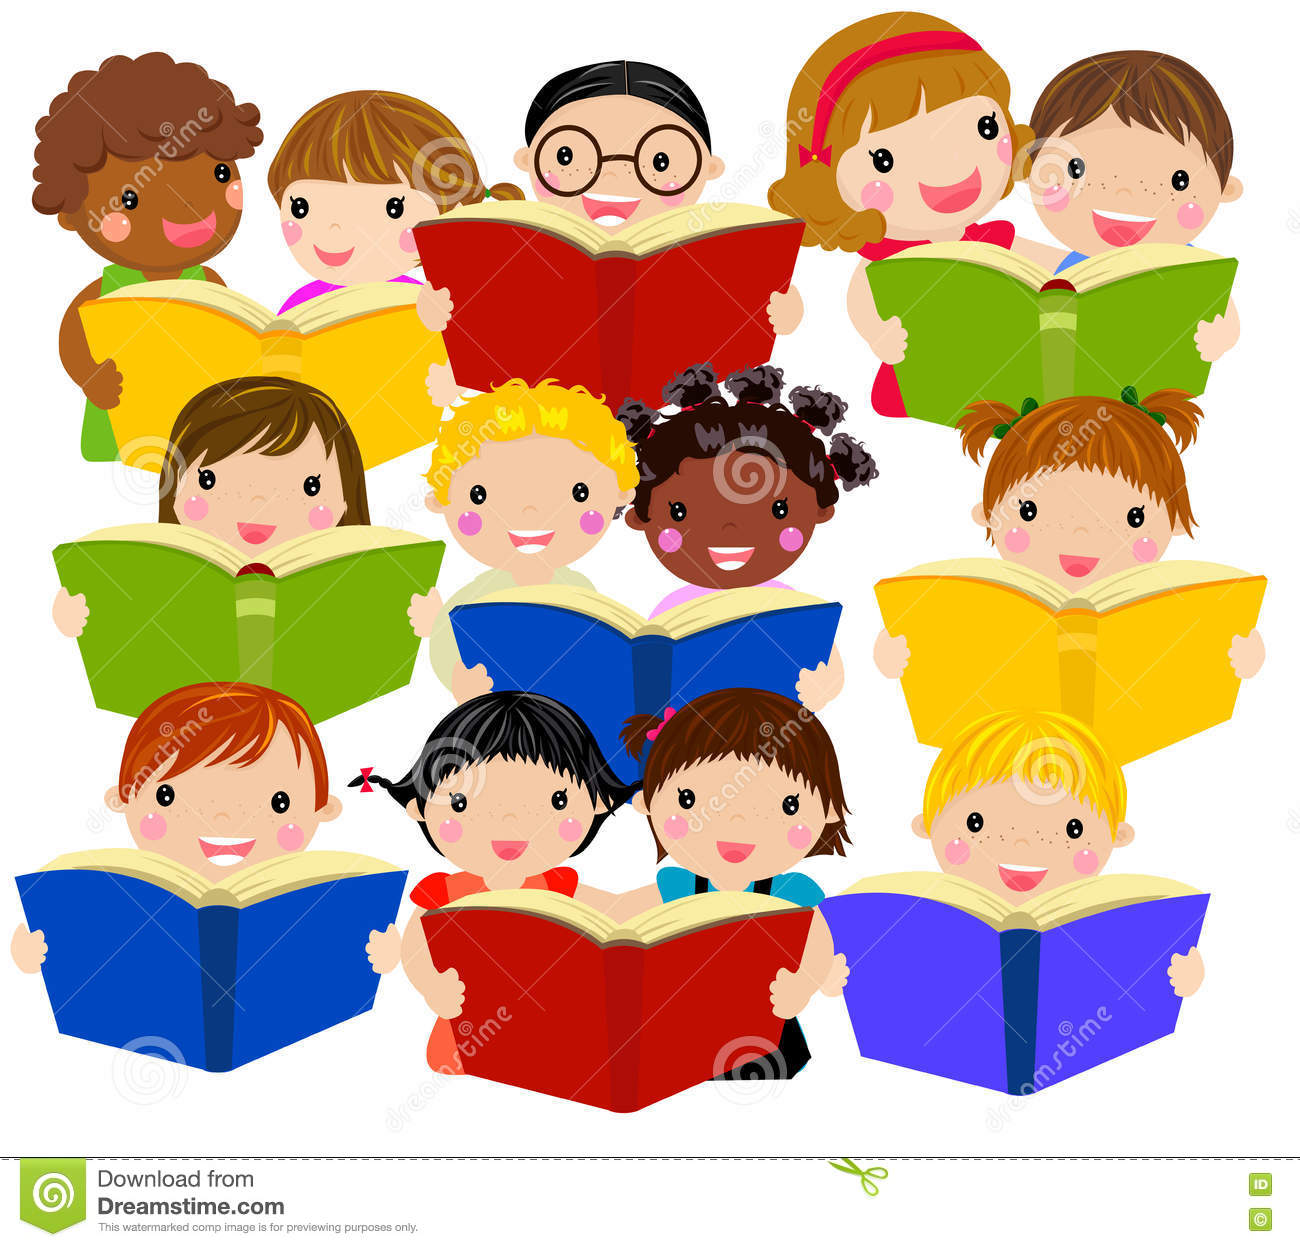 sharing books clipart - Clipground